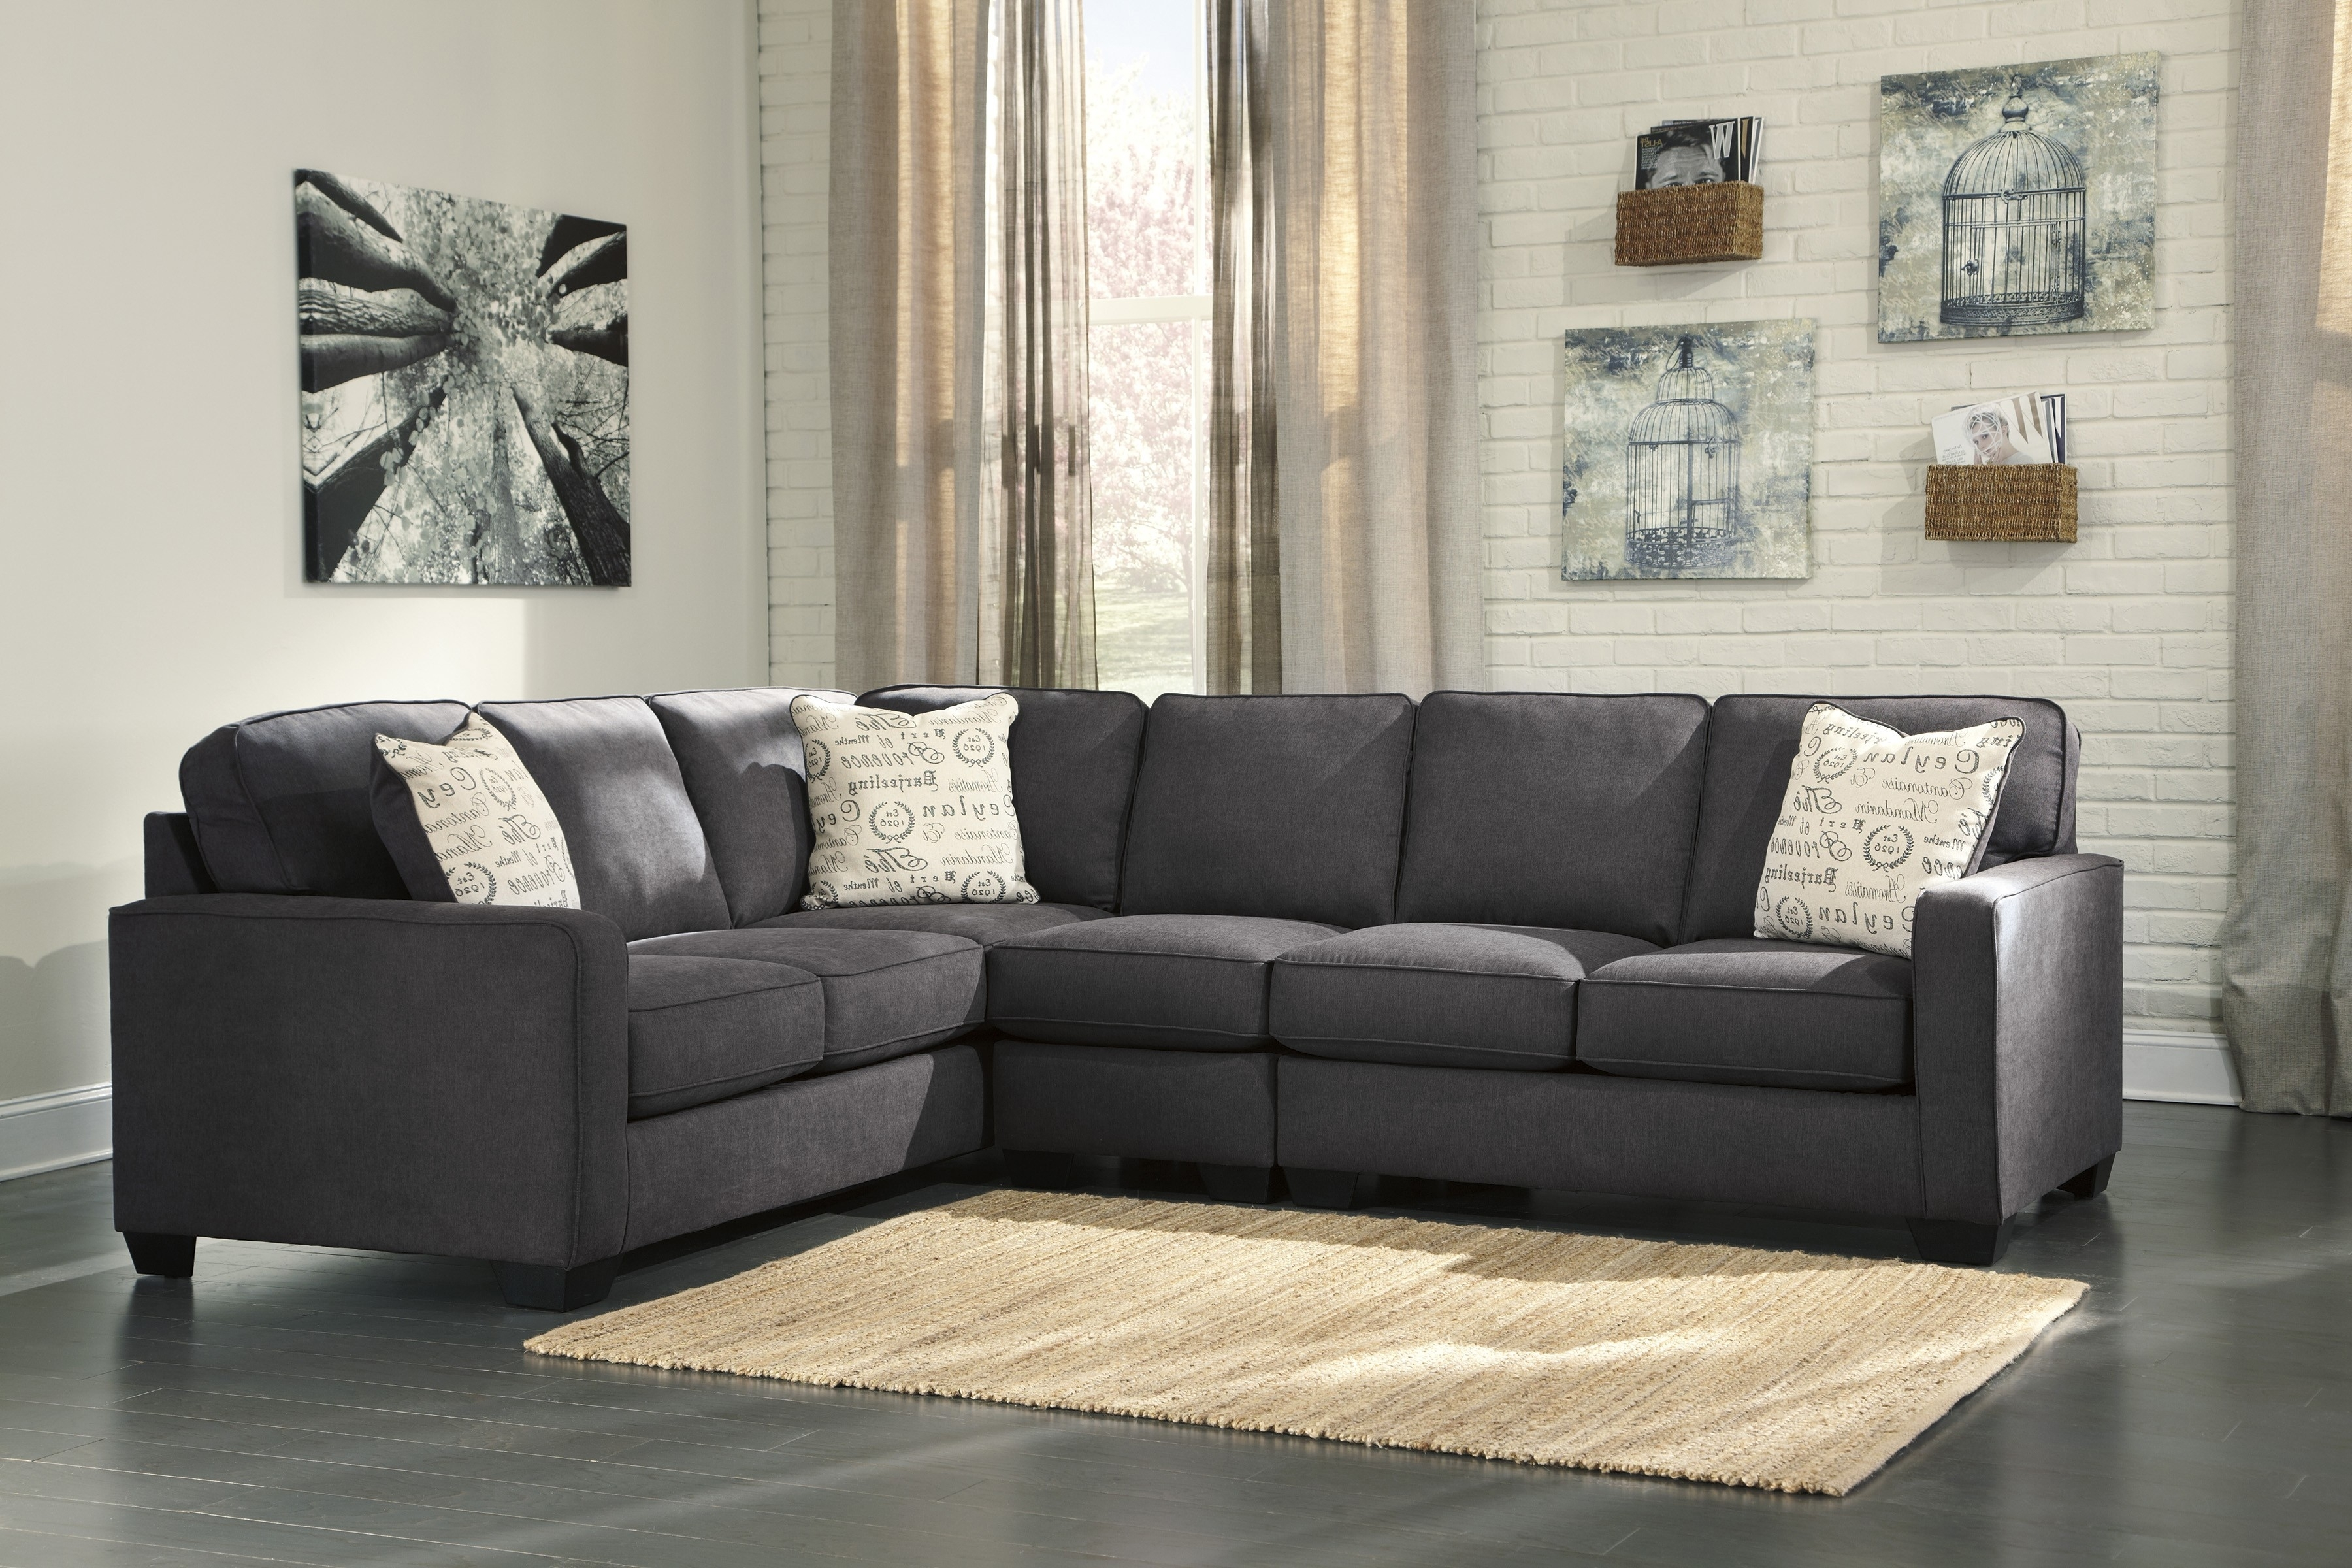 Alenya Charcoal 3 Piece Sectional Sofa For $ (Image 3 of 10)